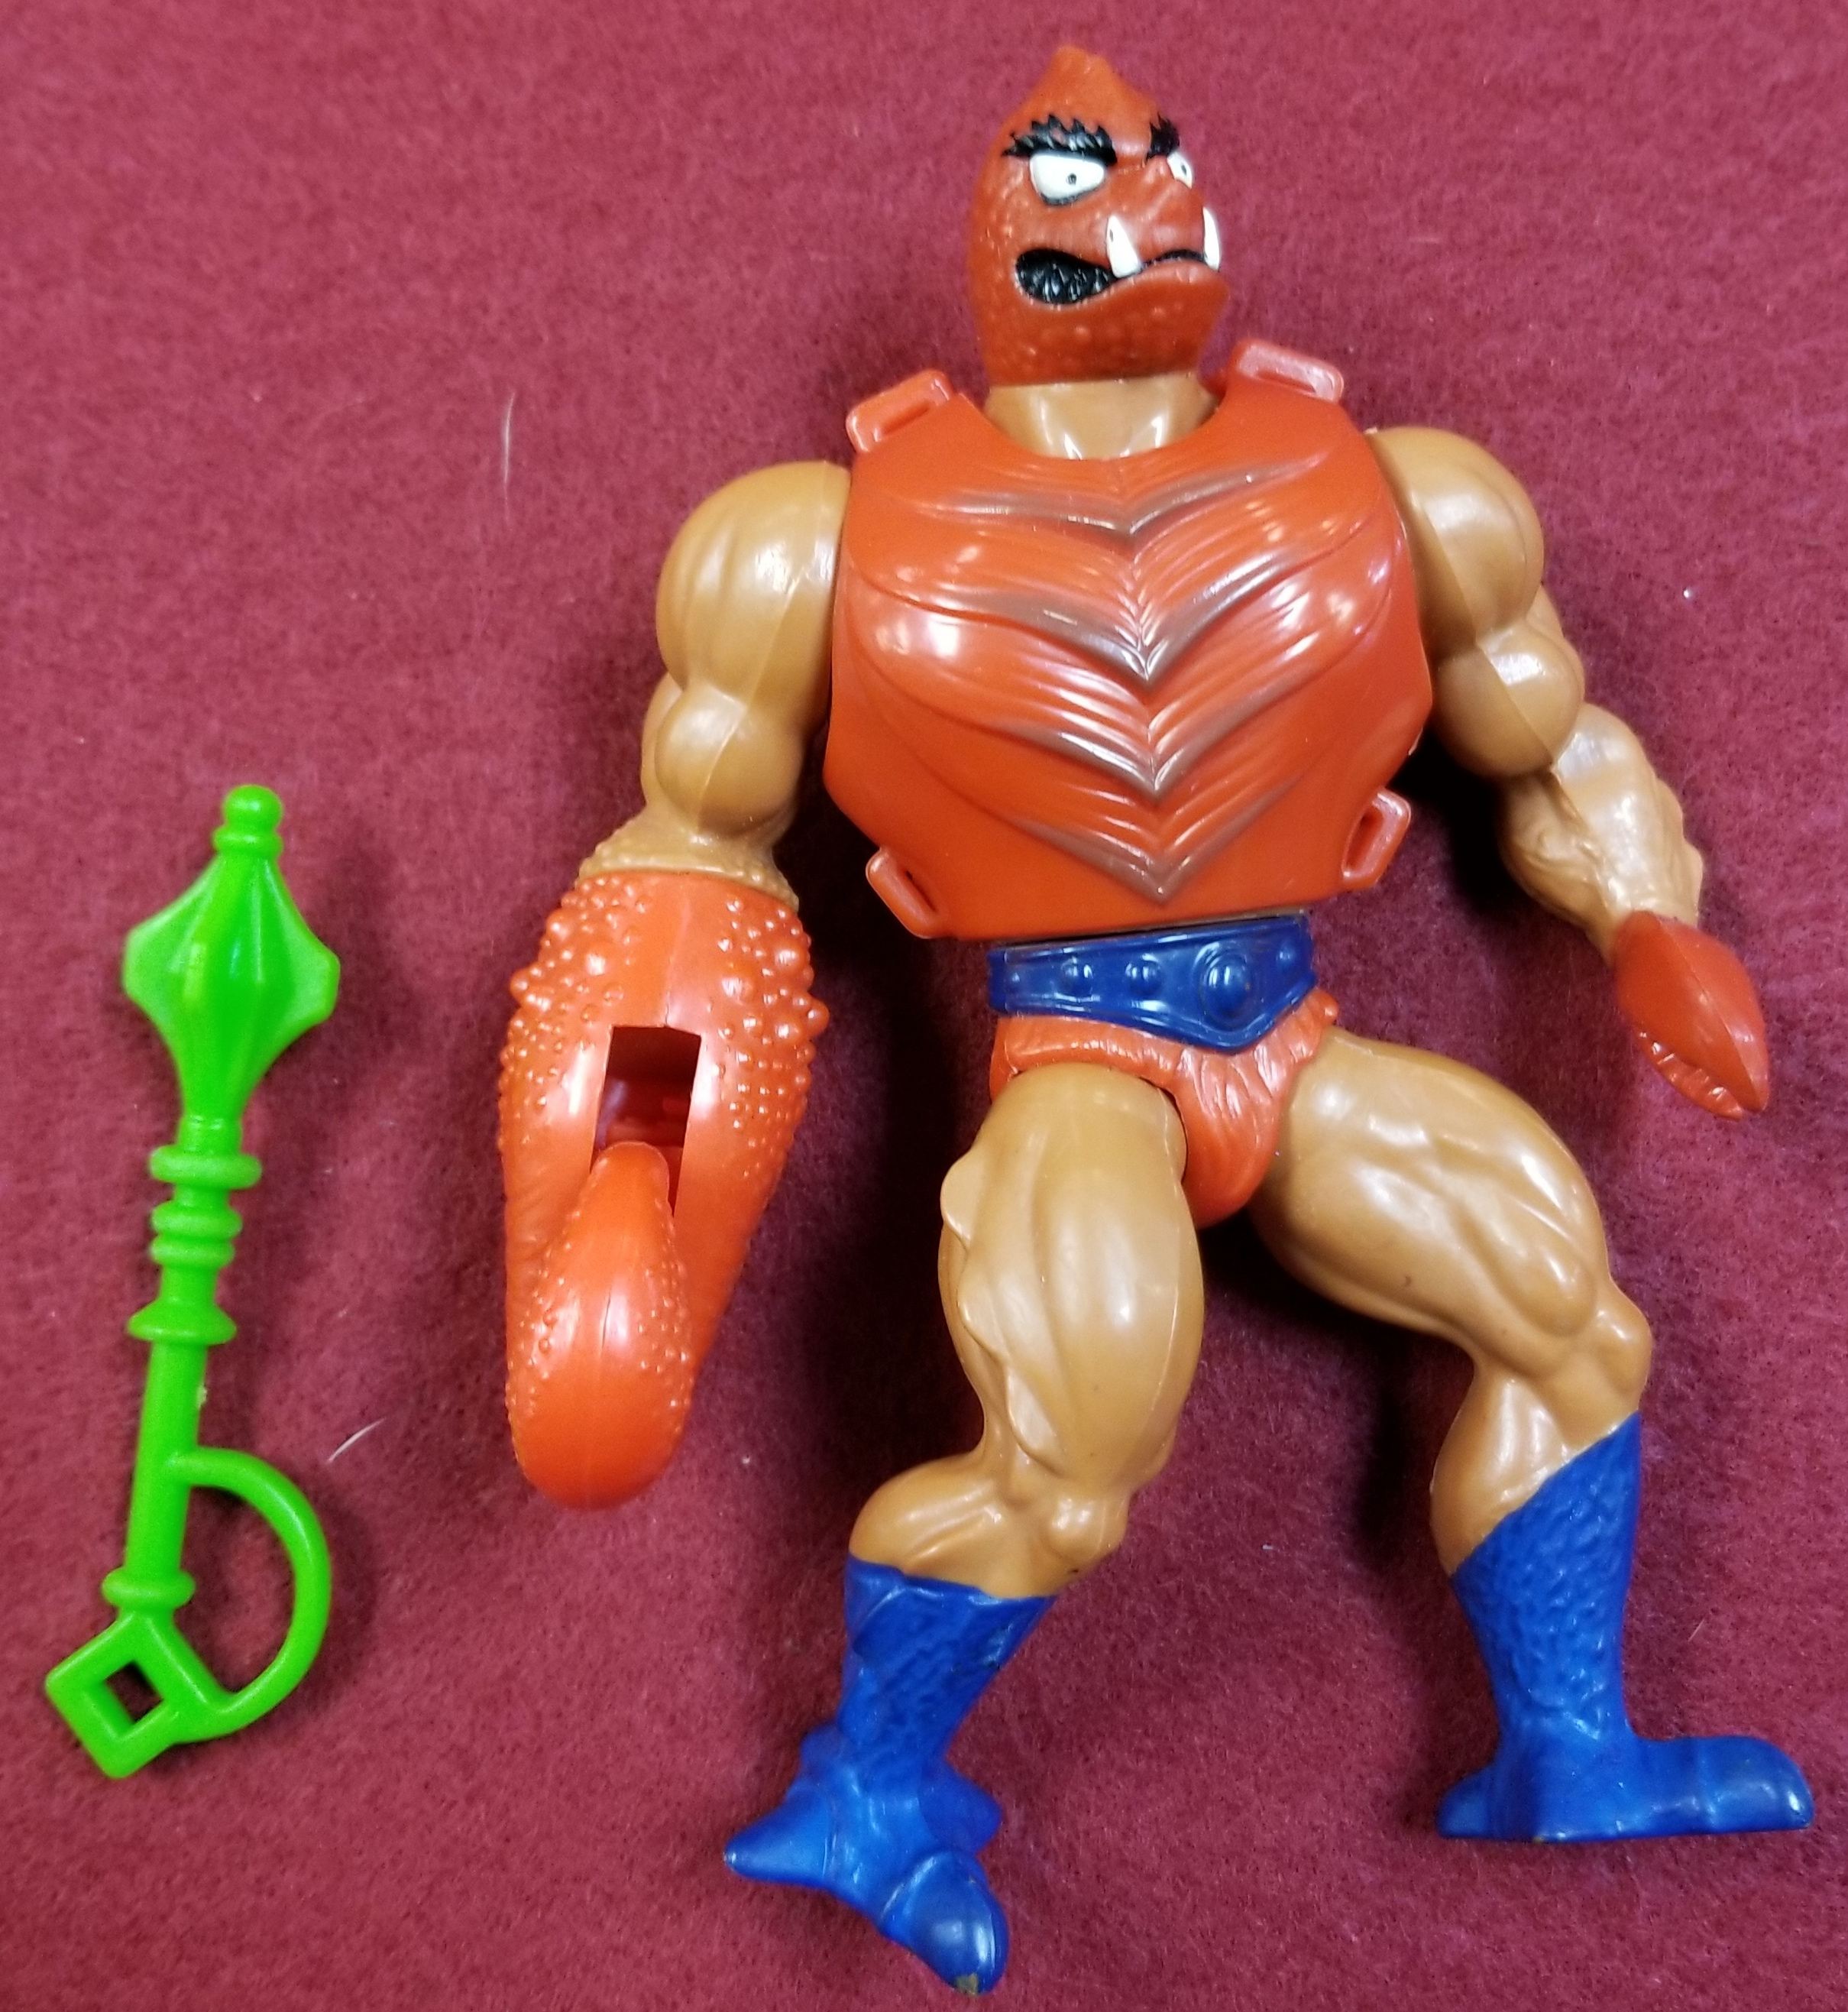 MASTERS OF THE UNIVERSE CLASSIC FIGURES - CLAWFUL